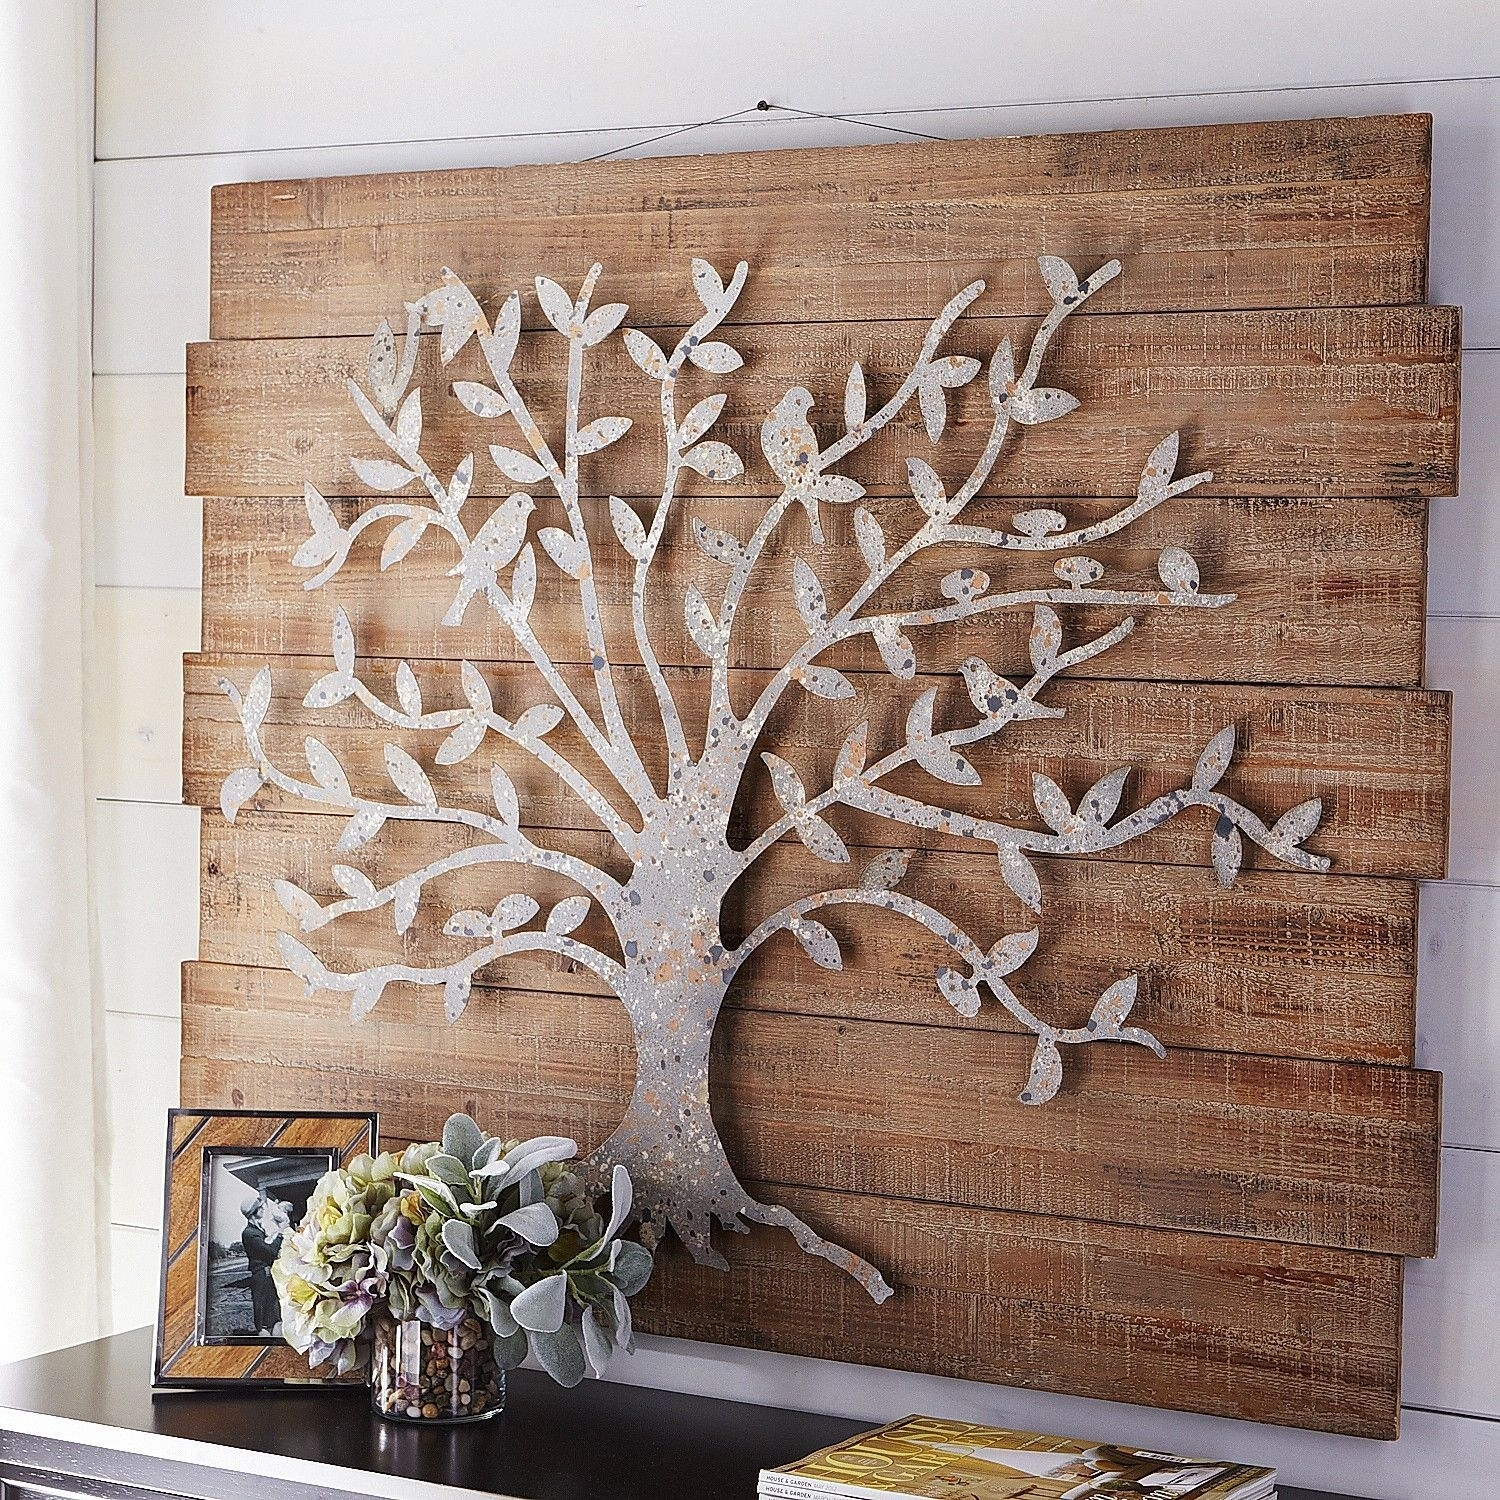 Timeless Tree Wall Decor | Pier 1 Imports … | Metal Work | Pinte… in Metal Tree Wall Art (Image 16 of 21)